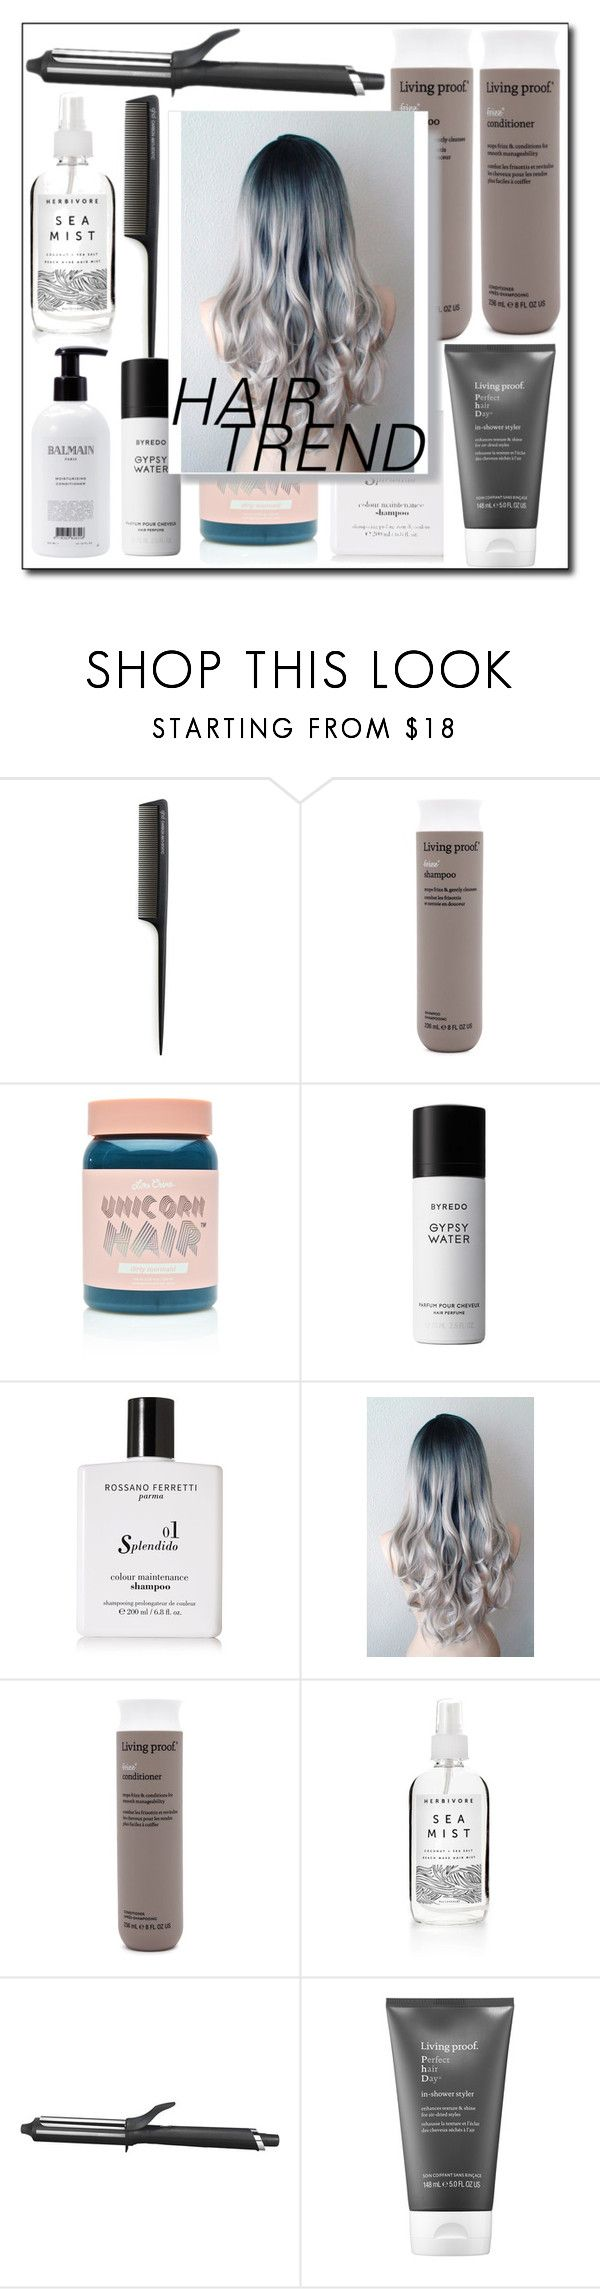 """Hair trend"" by marielindhardtsen ❤ liked on Polyvore featuring beauty, GHD, Living Proof, Lime Crime, Liberty, Rossano Ferretti, Herbivore and Balmain"